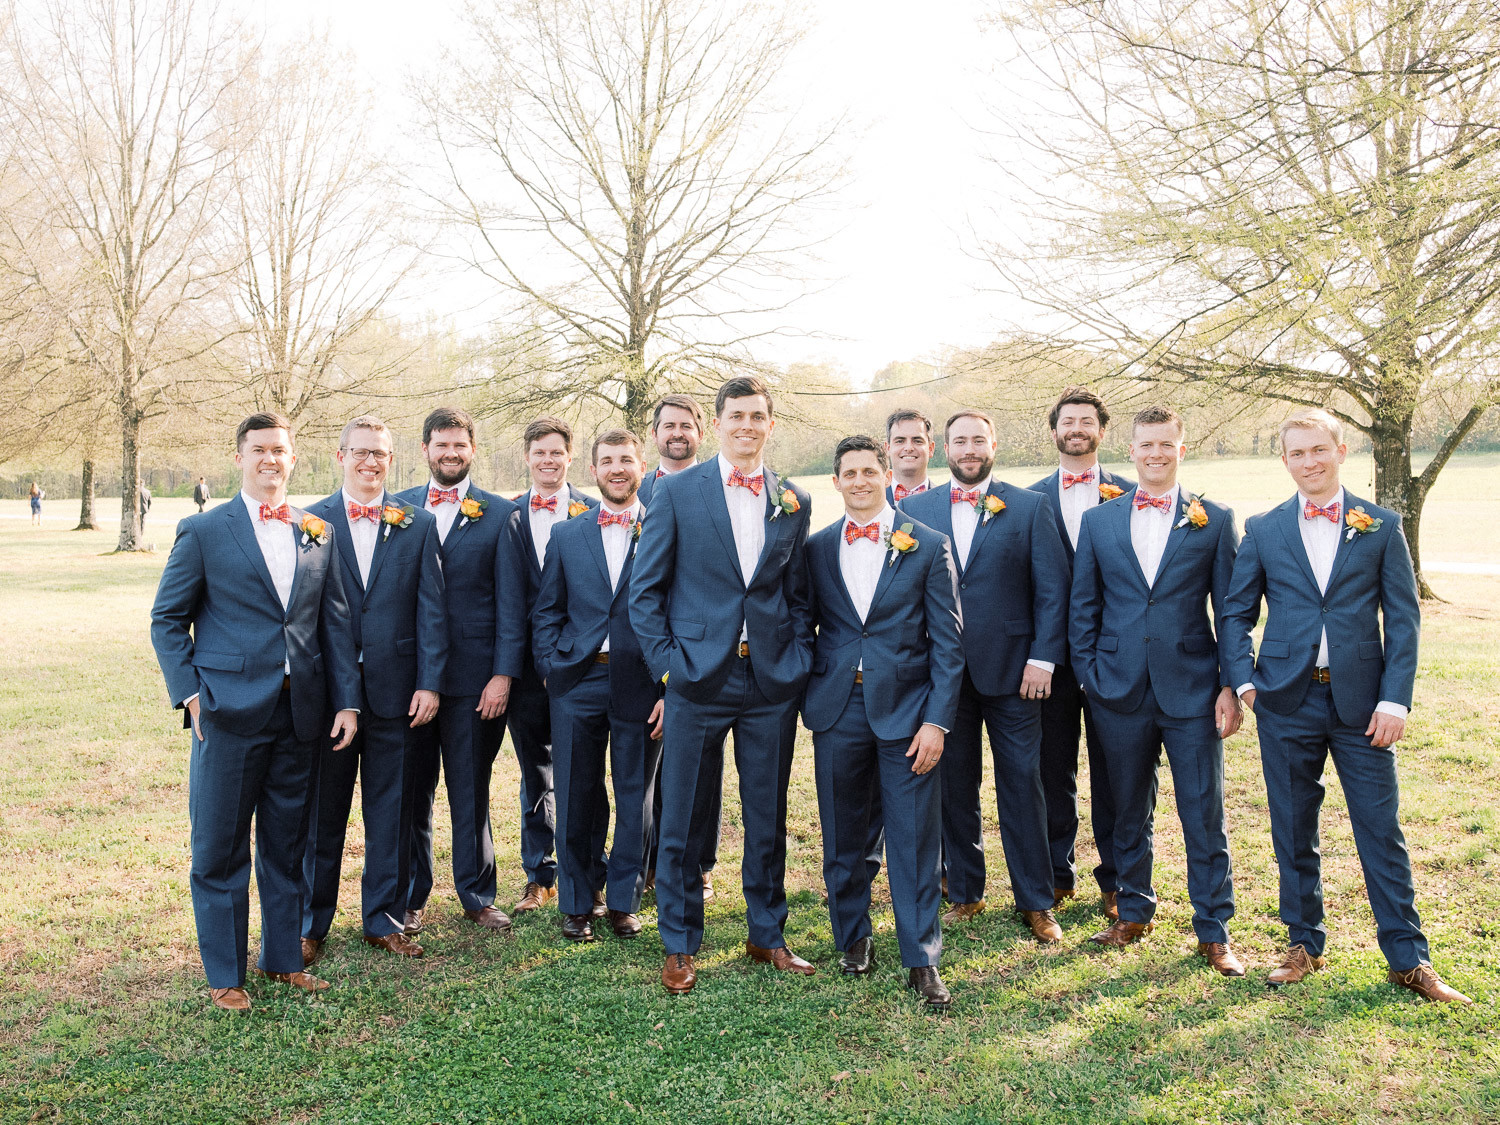 Charleston Wedding Photographers Virgil Bunao Dallas Cowboy Cheerleader Clemson Rally Cat ties the knot at The Oaks Wedding Venue